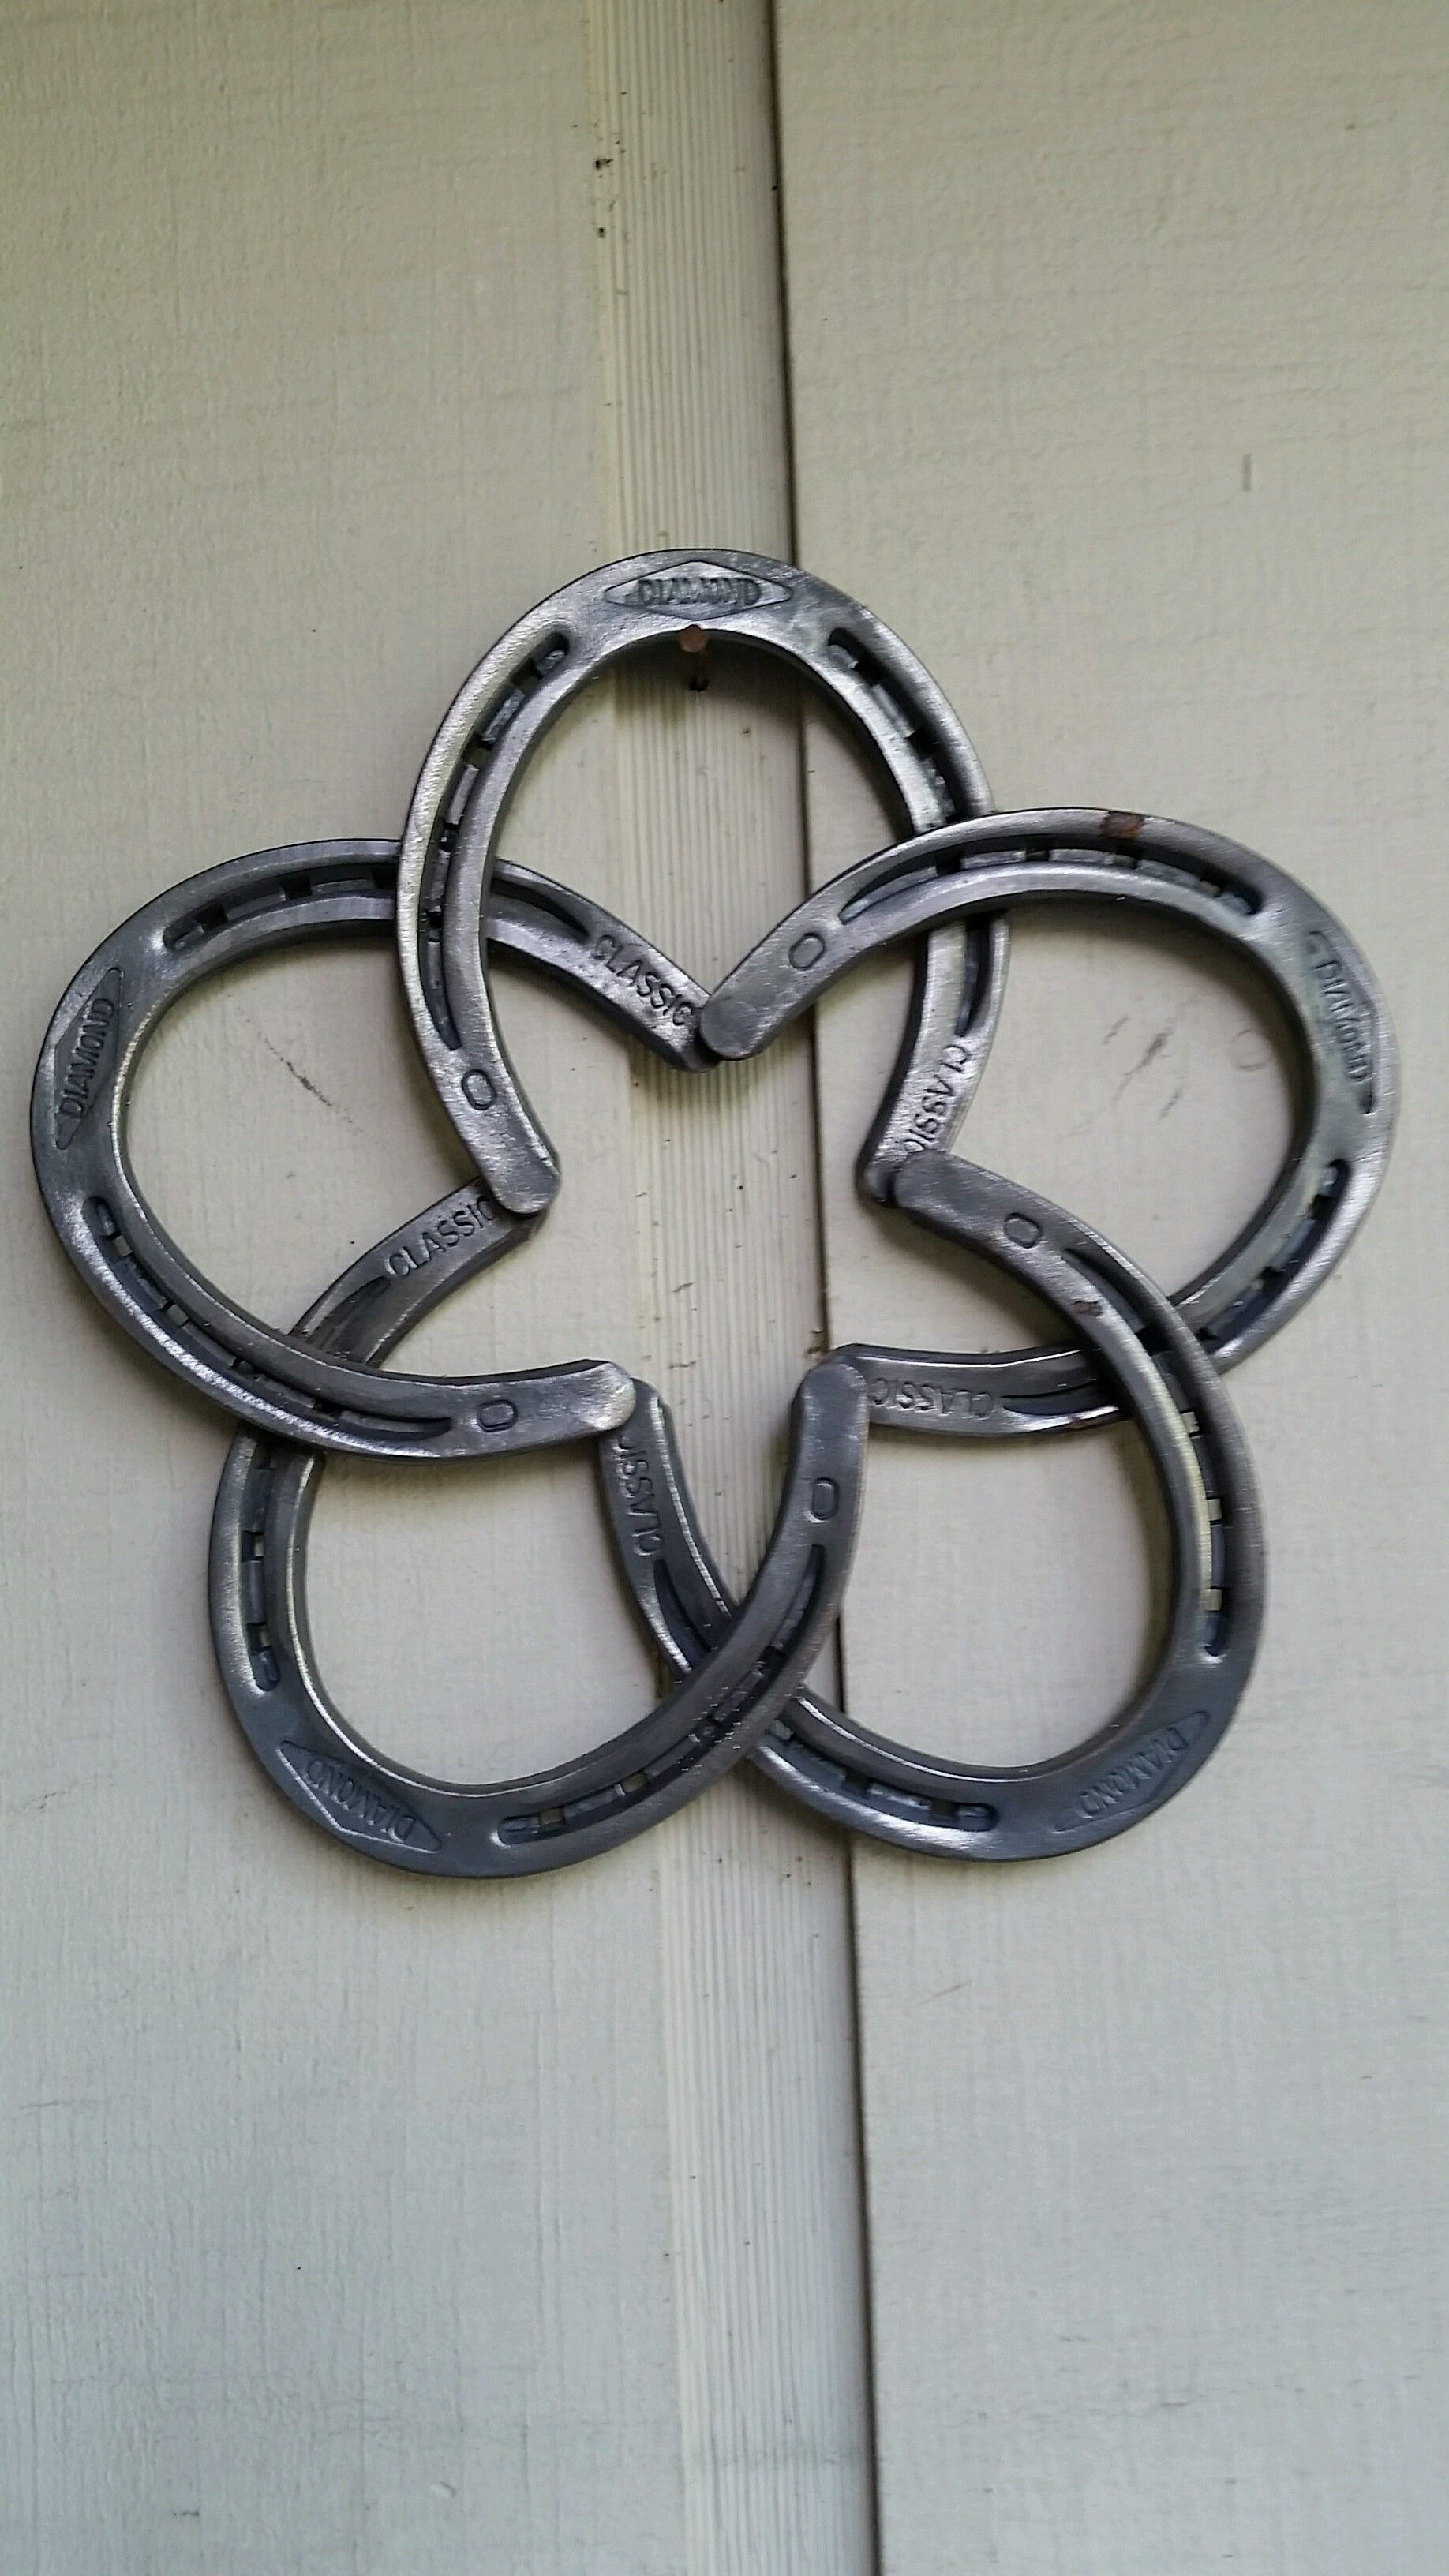 Pin by Del Scaman on Art | Pinterest | Yard art, Metals and Fun projects